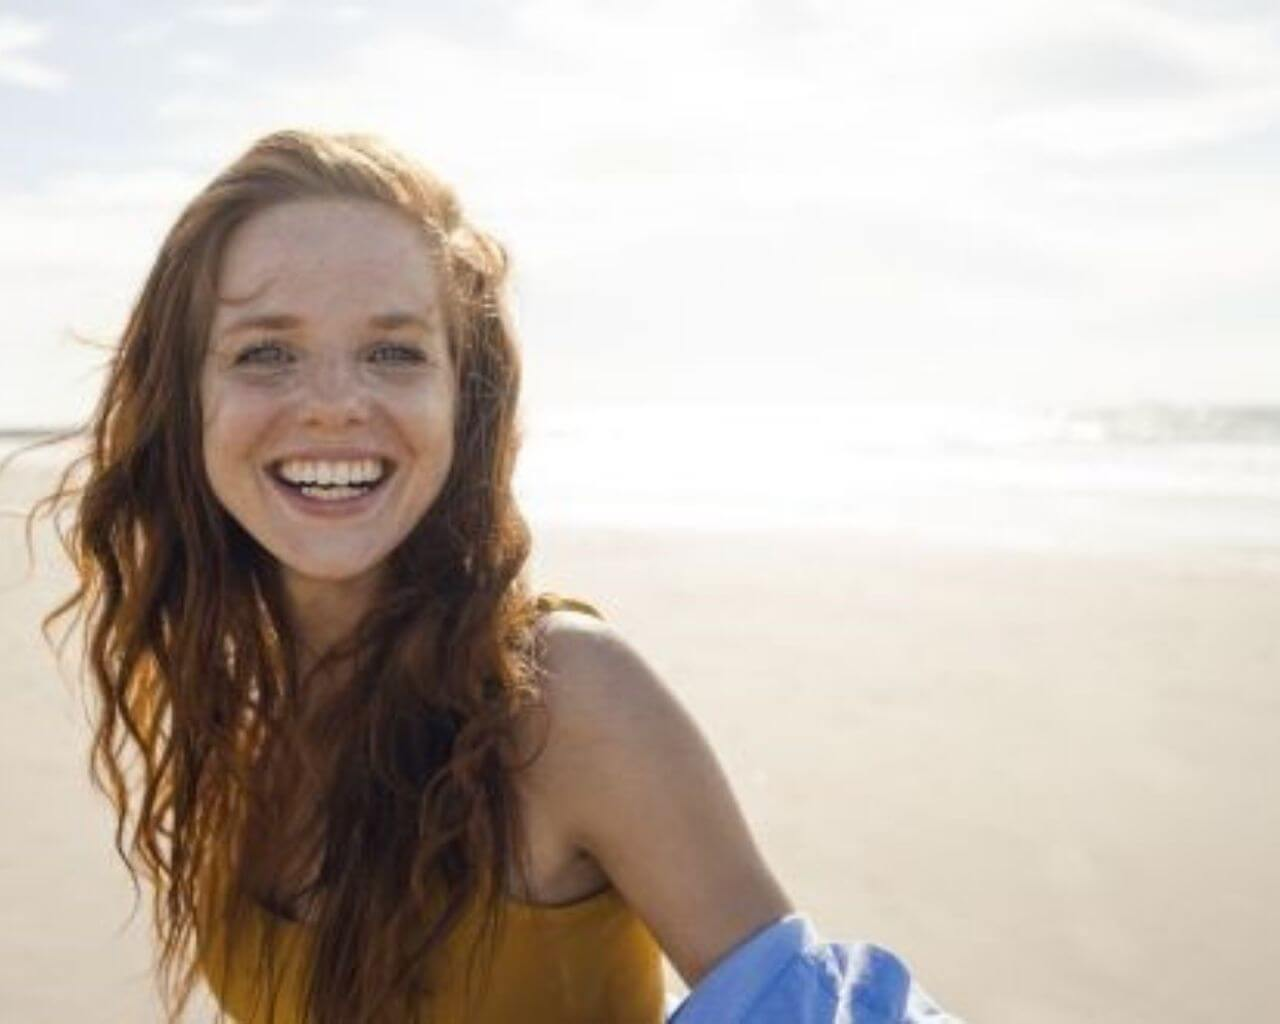 pic of a smiling girl on a beach